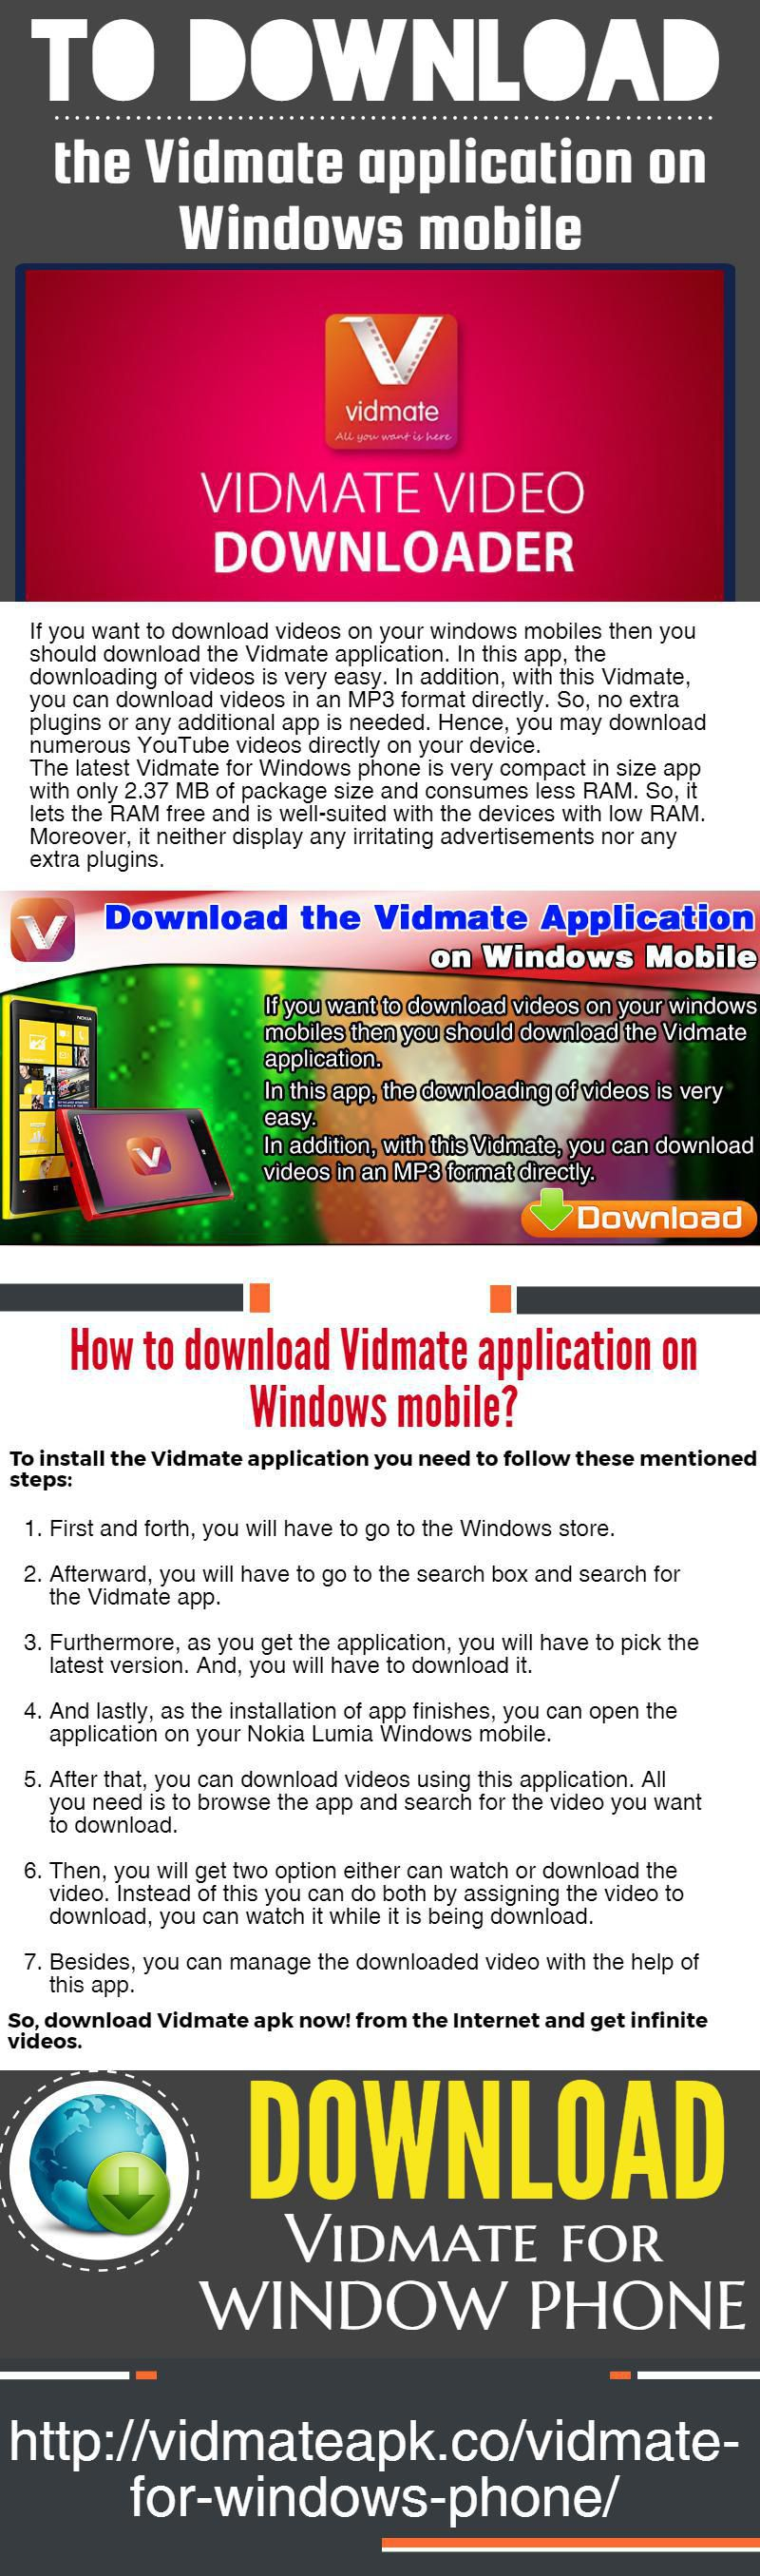 Vidmate video downloader help you to download videos and